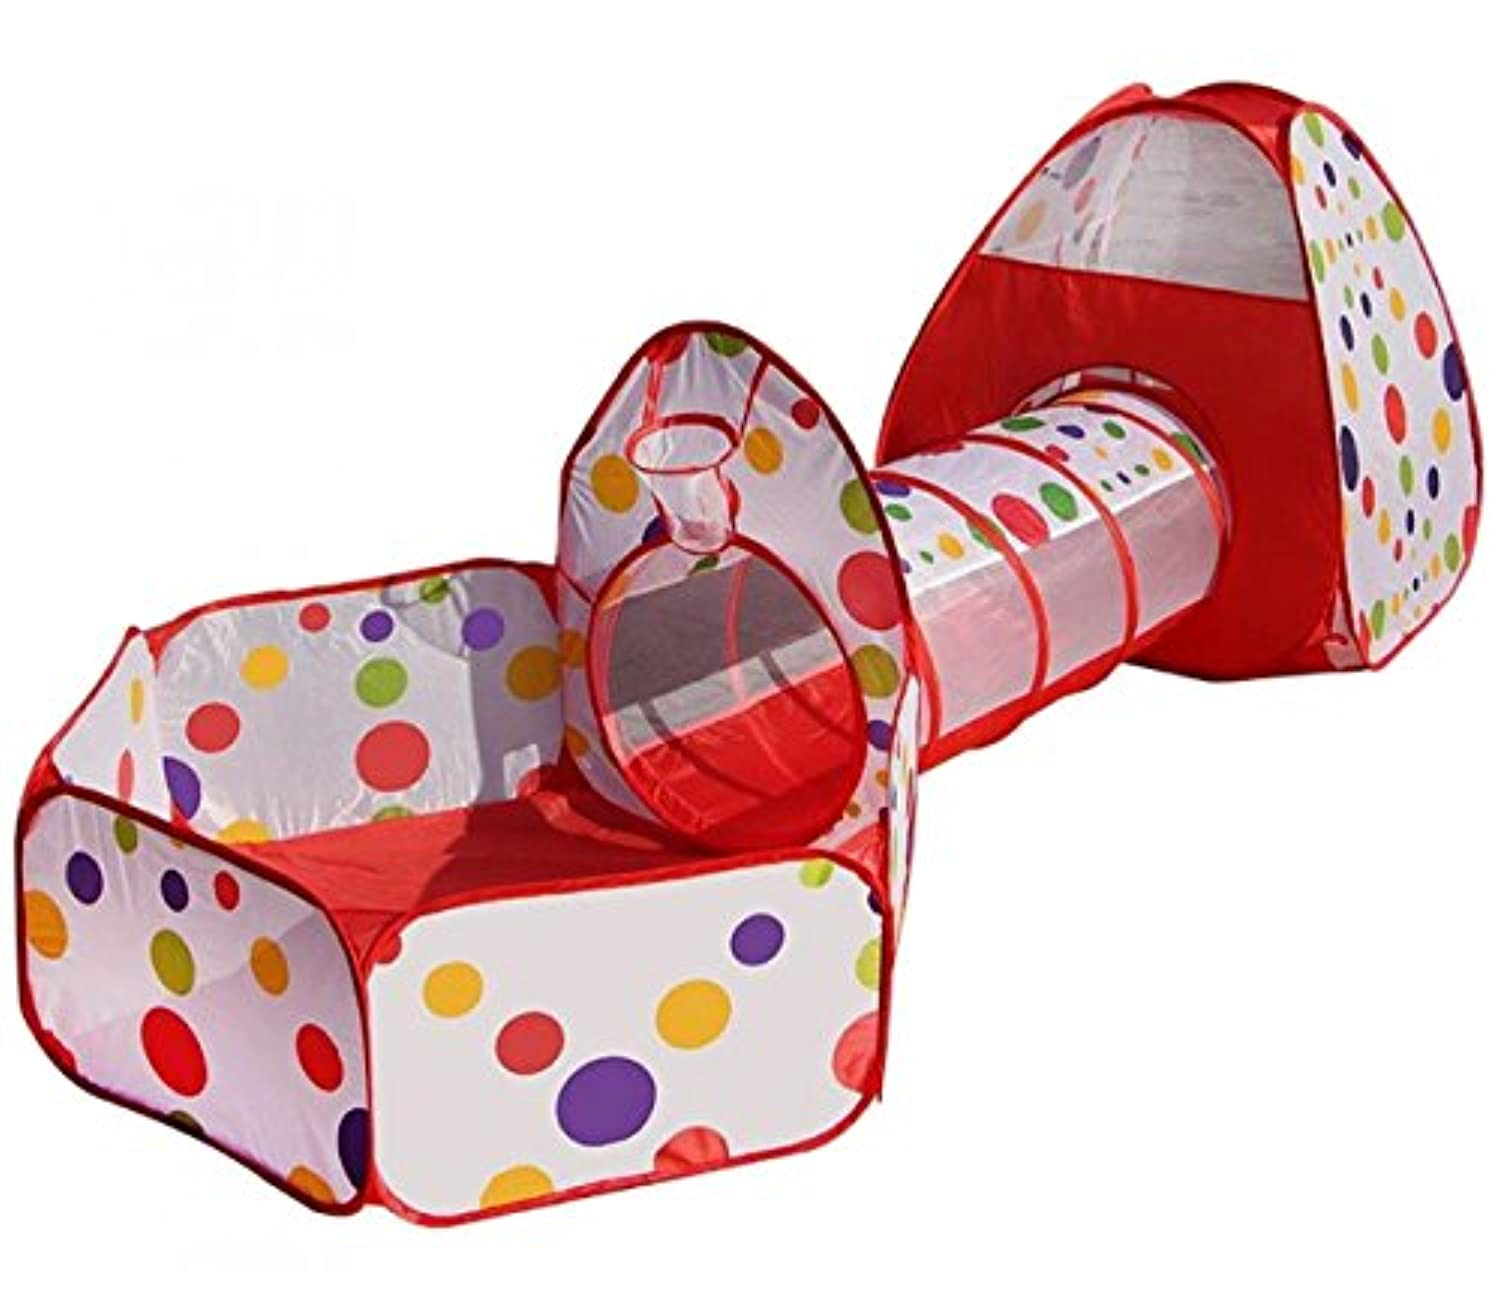 tieno Children Fun Play Tent withトンネルPop UpクロールPlayhouseボールピット3ピーステントセットfor Kids One Size レッド